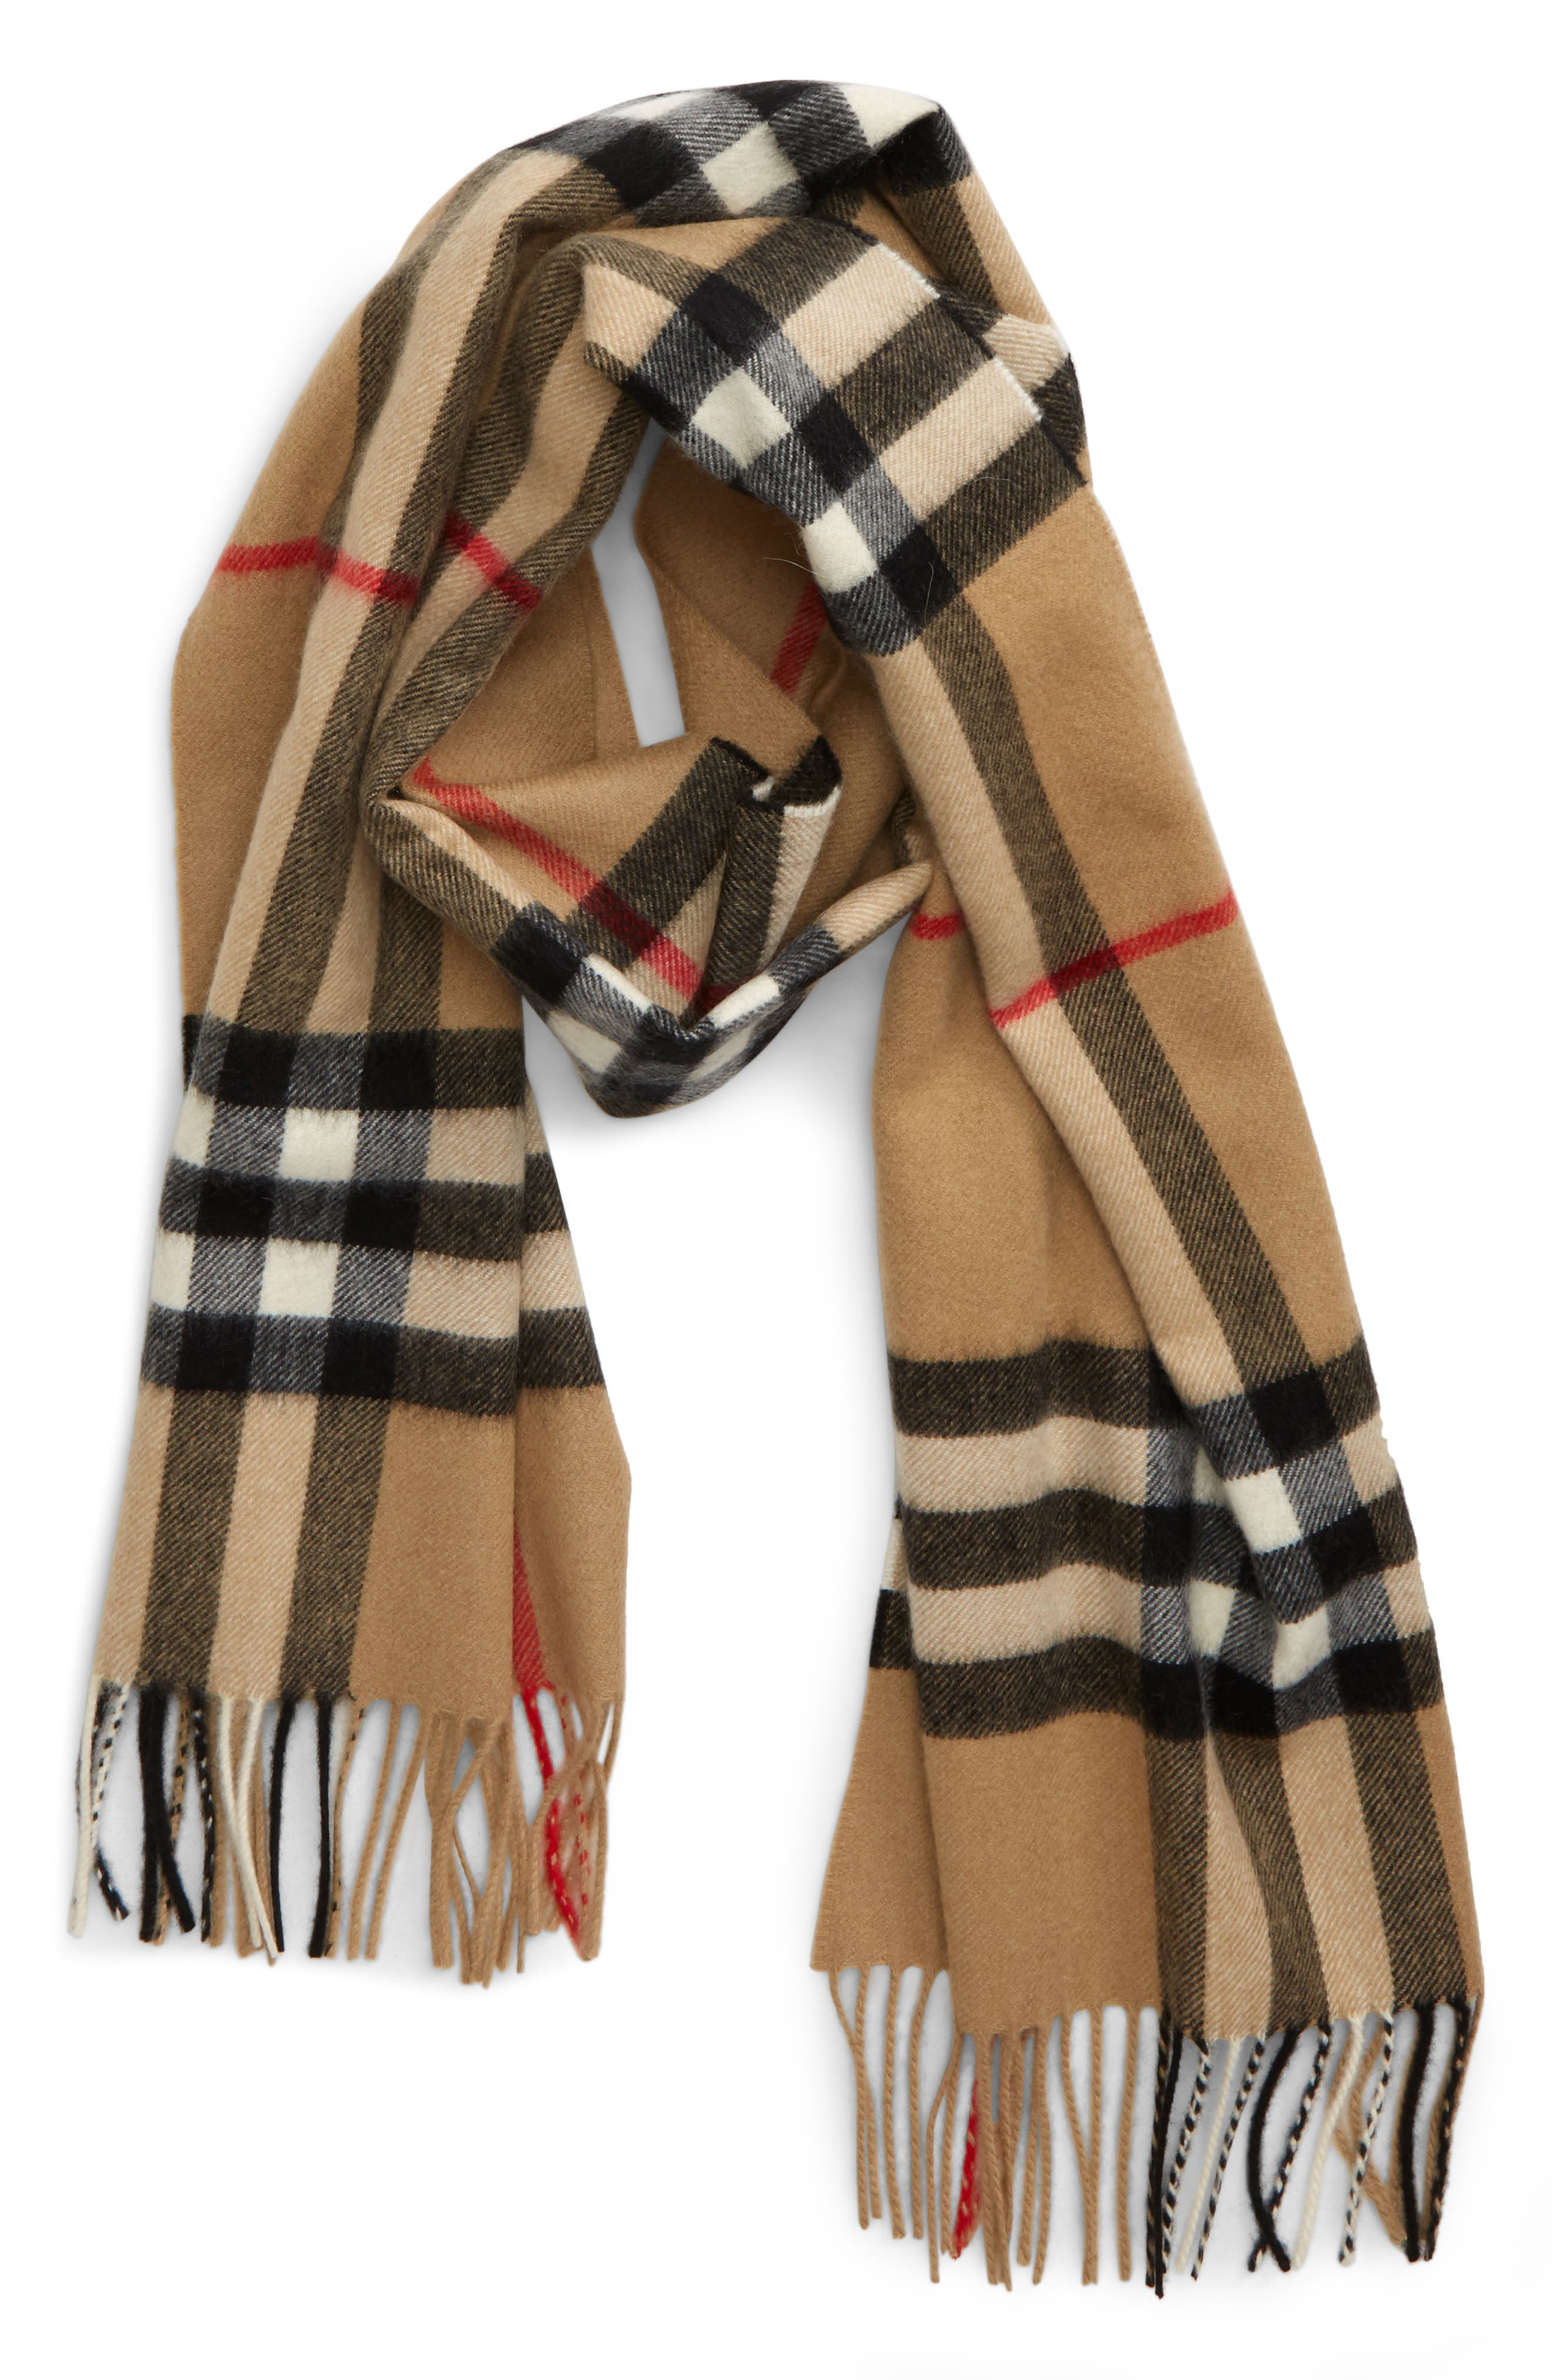 Men's Burberry View All: Clothing